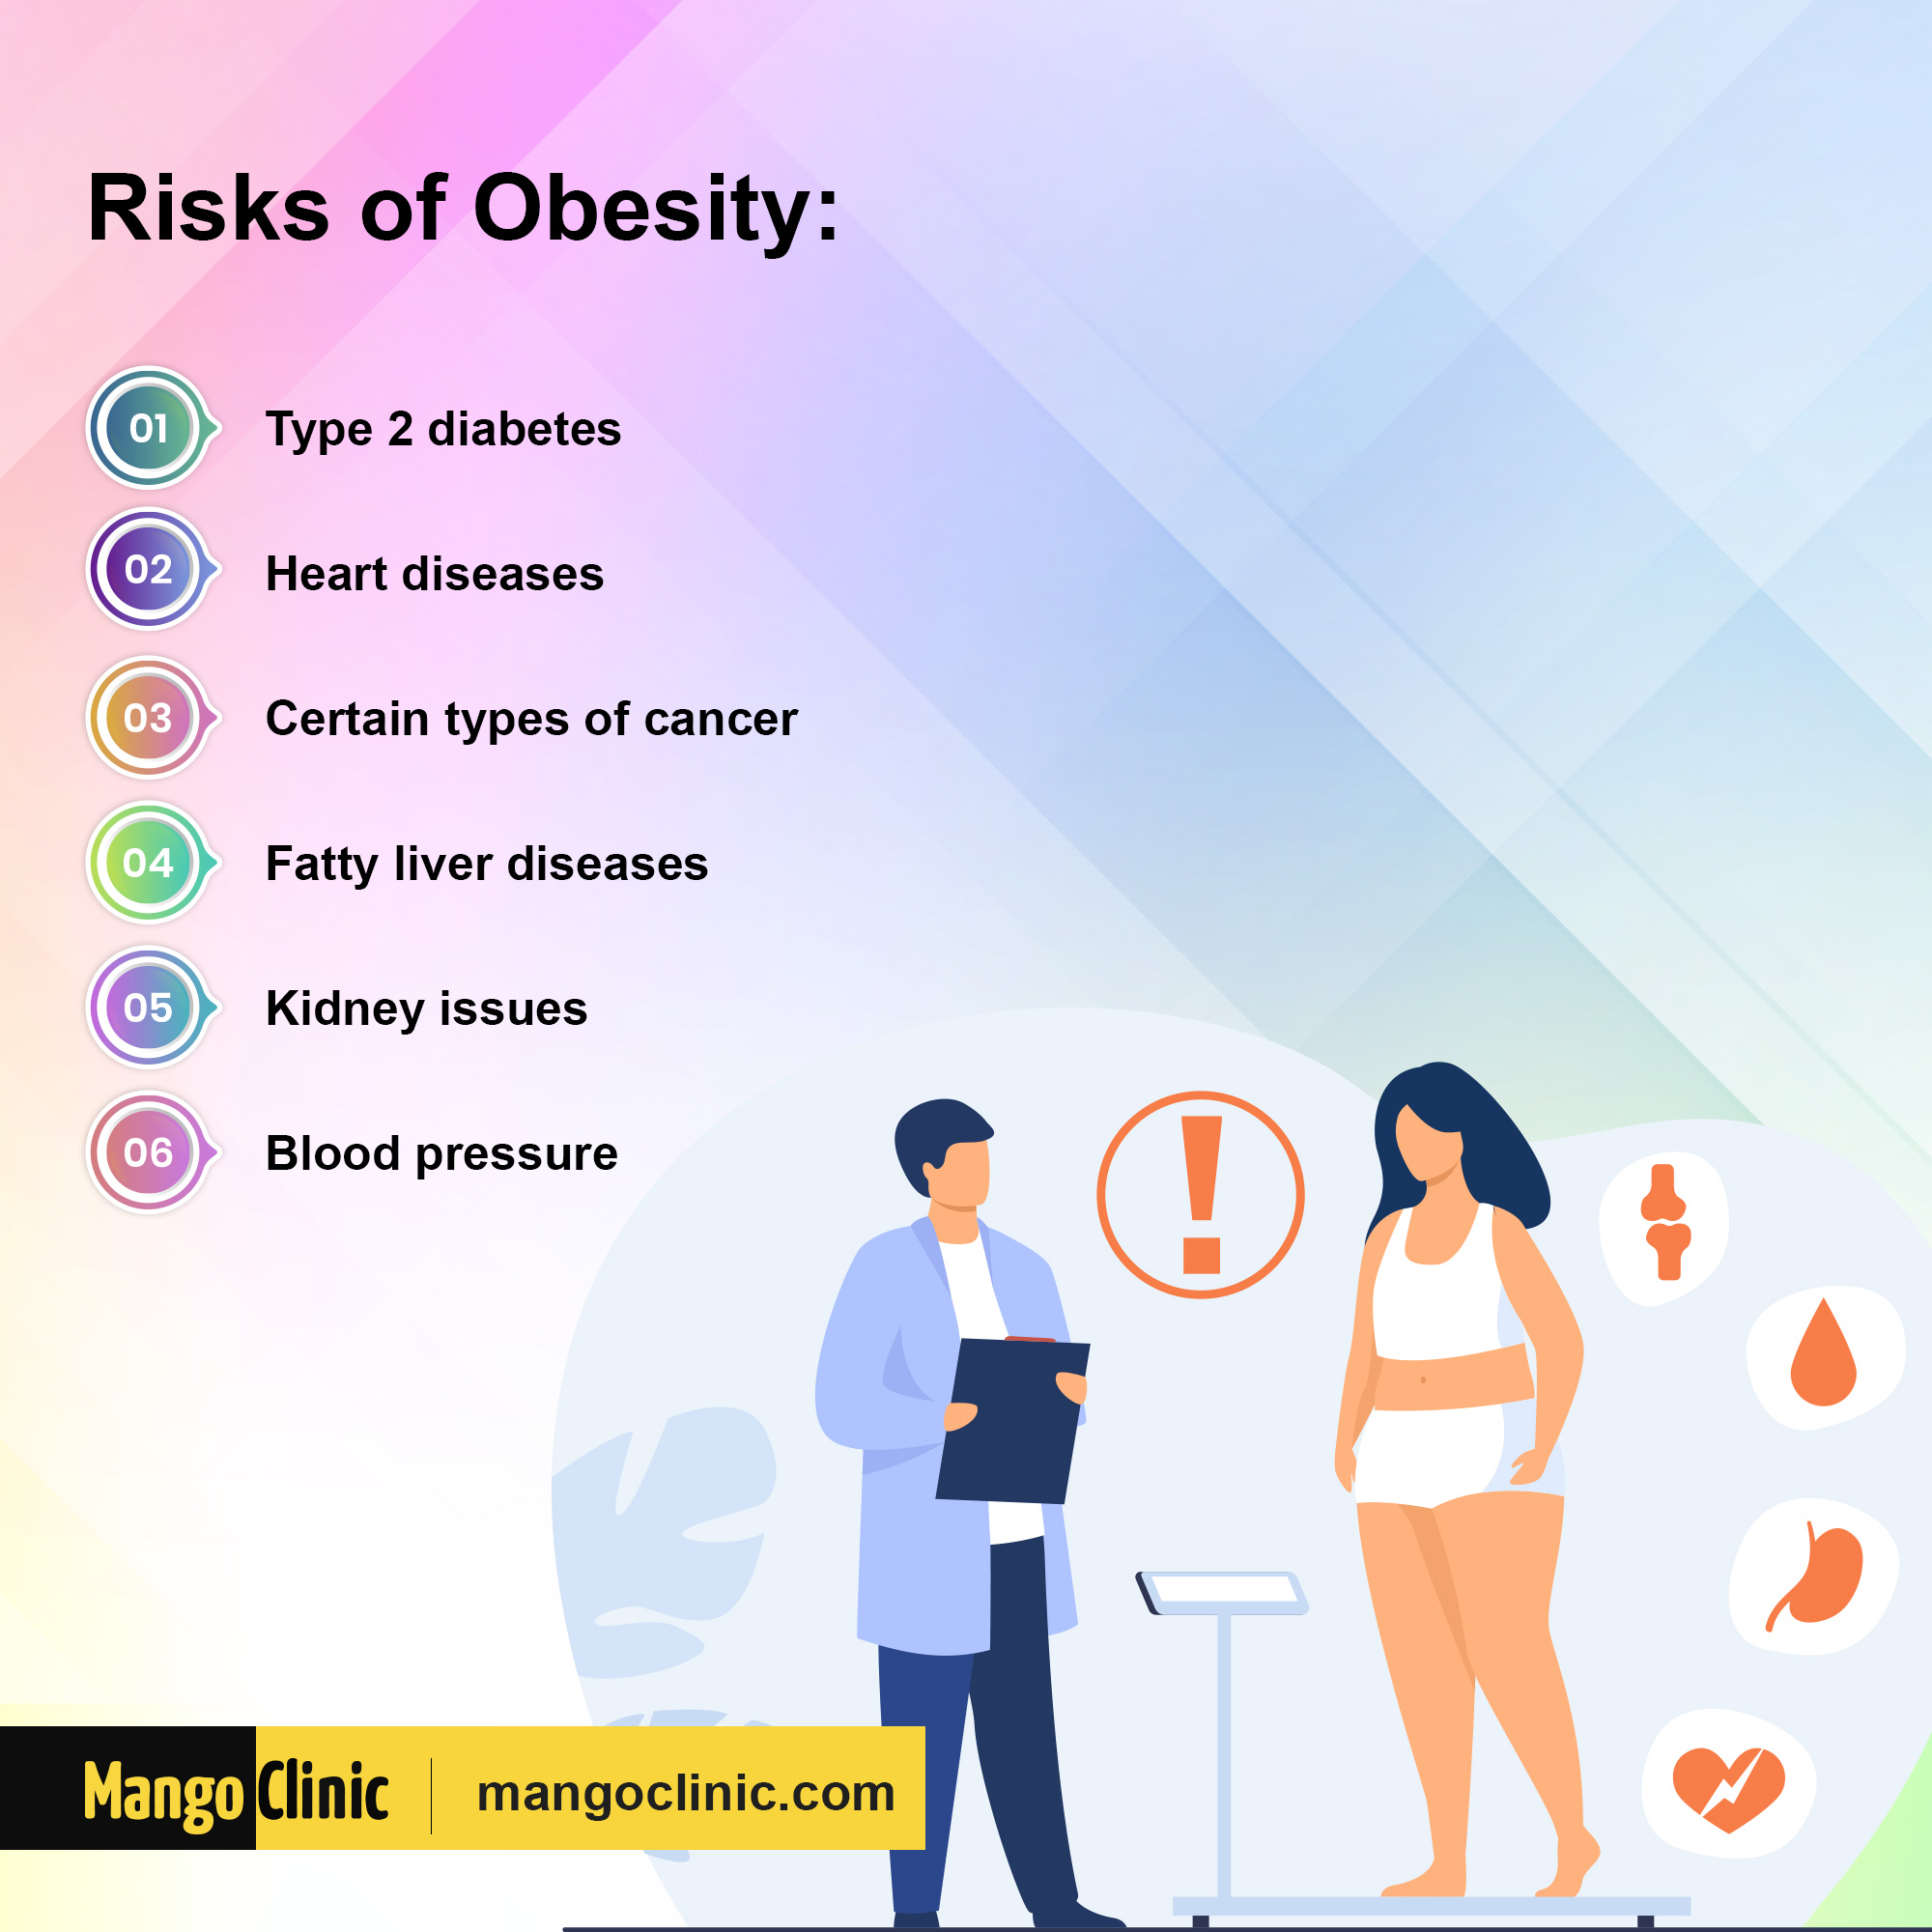 Obesity and its risks